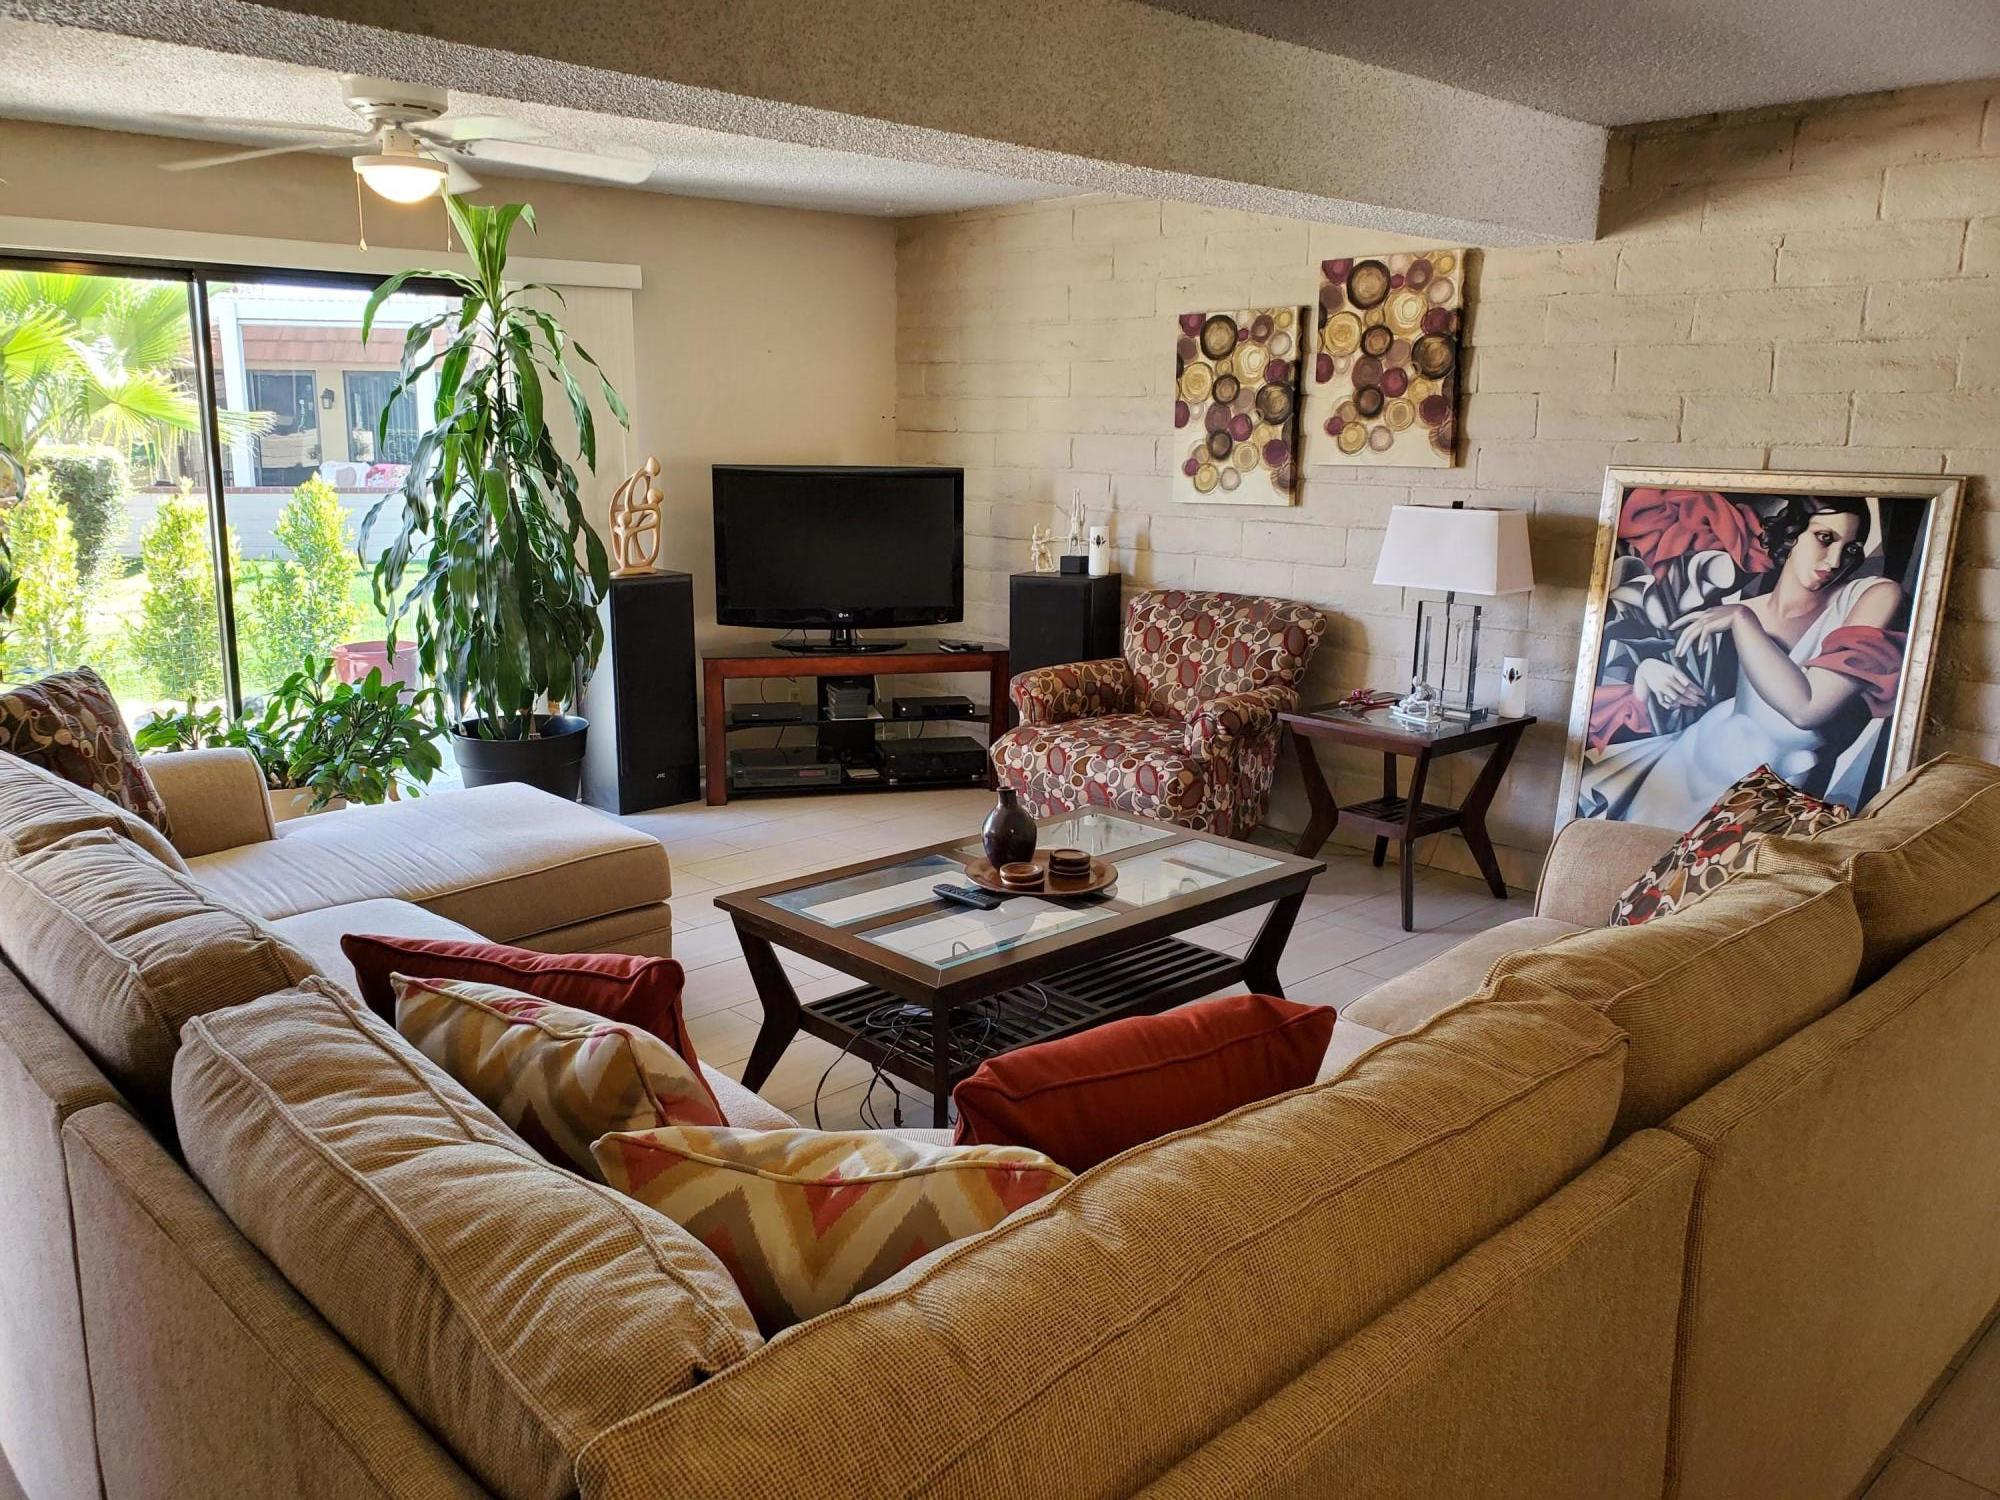 !!RECENT PRICE ADJUSTMENT!! Conveniently and centrally located inside the gated Cathedral Canyon Country Club, this beautiful Townhome style condo is very close to the new Agua Caliente Casino, to downtown Palm Springs, as well as to the East Valley cities of Rancho Mirage and Palm Desert. This home features 1,505 square feet of spacious living on two floors. The two large upstairs bedrooms, each have their own separate baths, walk-in closets, and views. On the main downstairs floor, you'll appreciate the open living room, dining area with wet bar, and the galley kitchen. A separate guest bath, and the laundry area are also located on the main floor. From the very open and light living room, enjoy the view of the grassy common area and the swimming pool. Don't hesitate on this opportunity. You will certainly appreciate and enjoy the desert resort environment, proximity to all the special venues of the desert, and all the amenities offered in the home and the community.